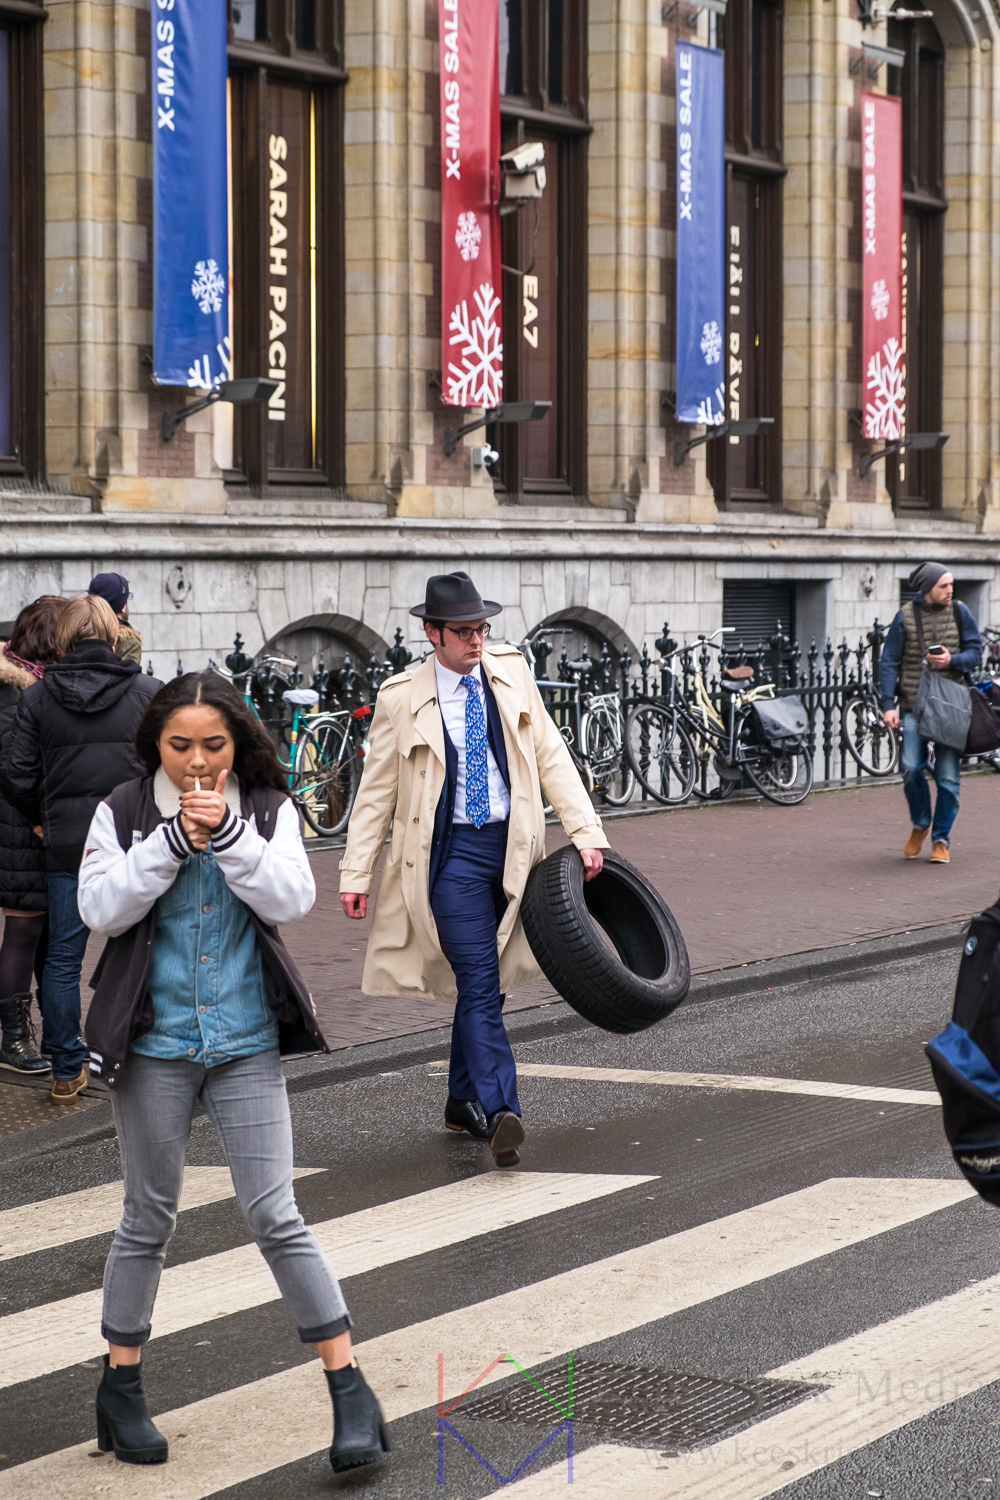 Straatfotografie door Kees Krick Media